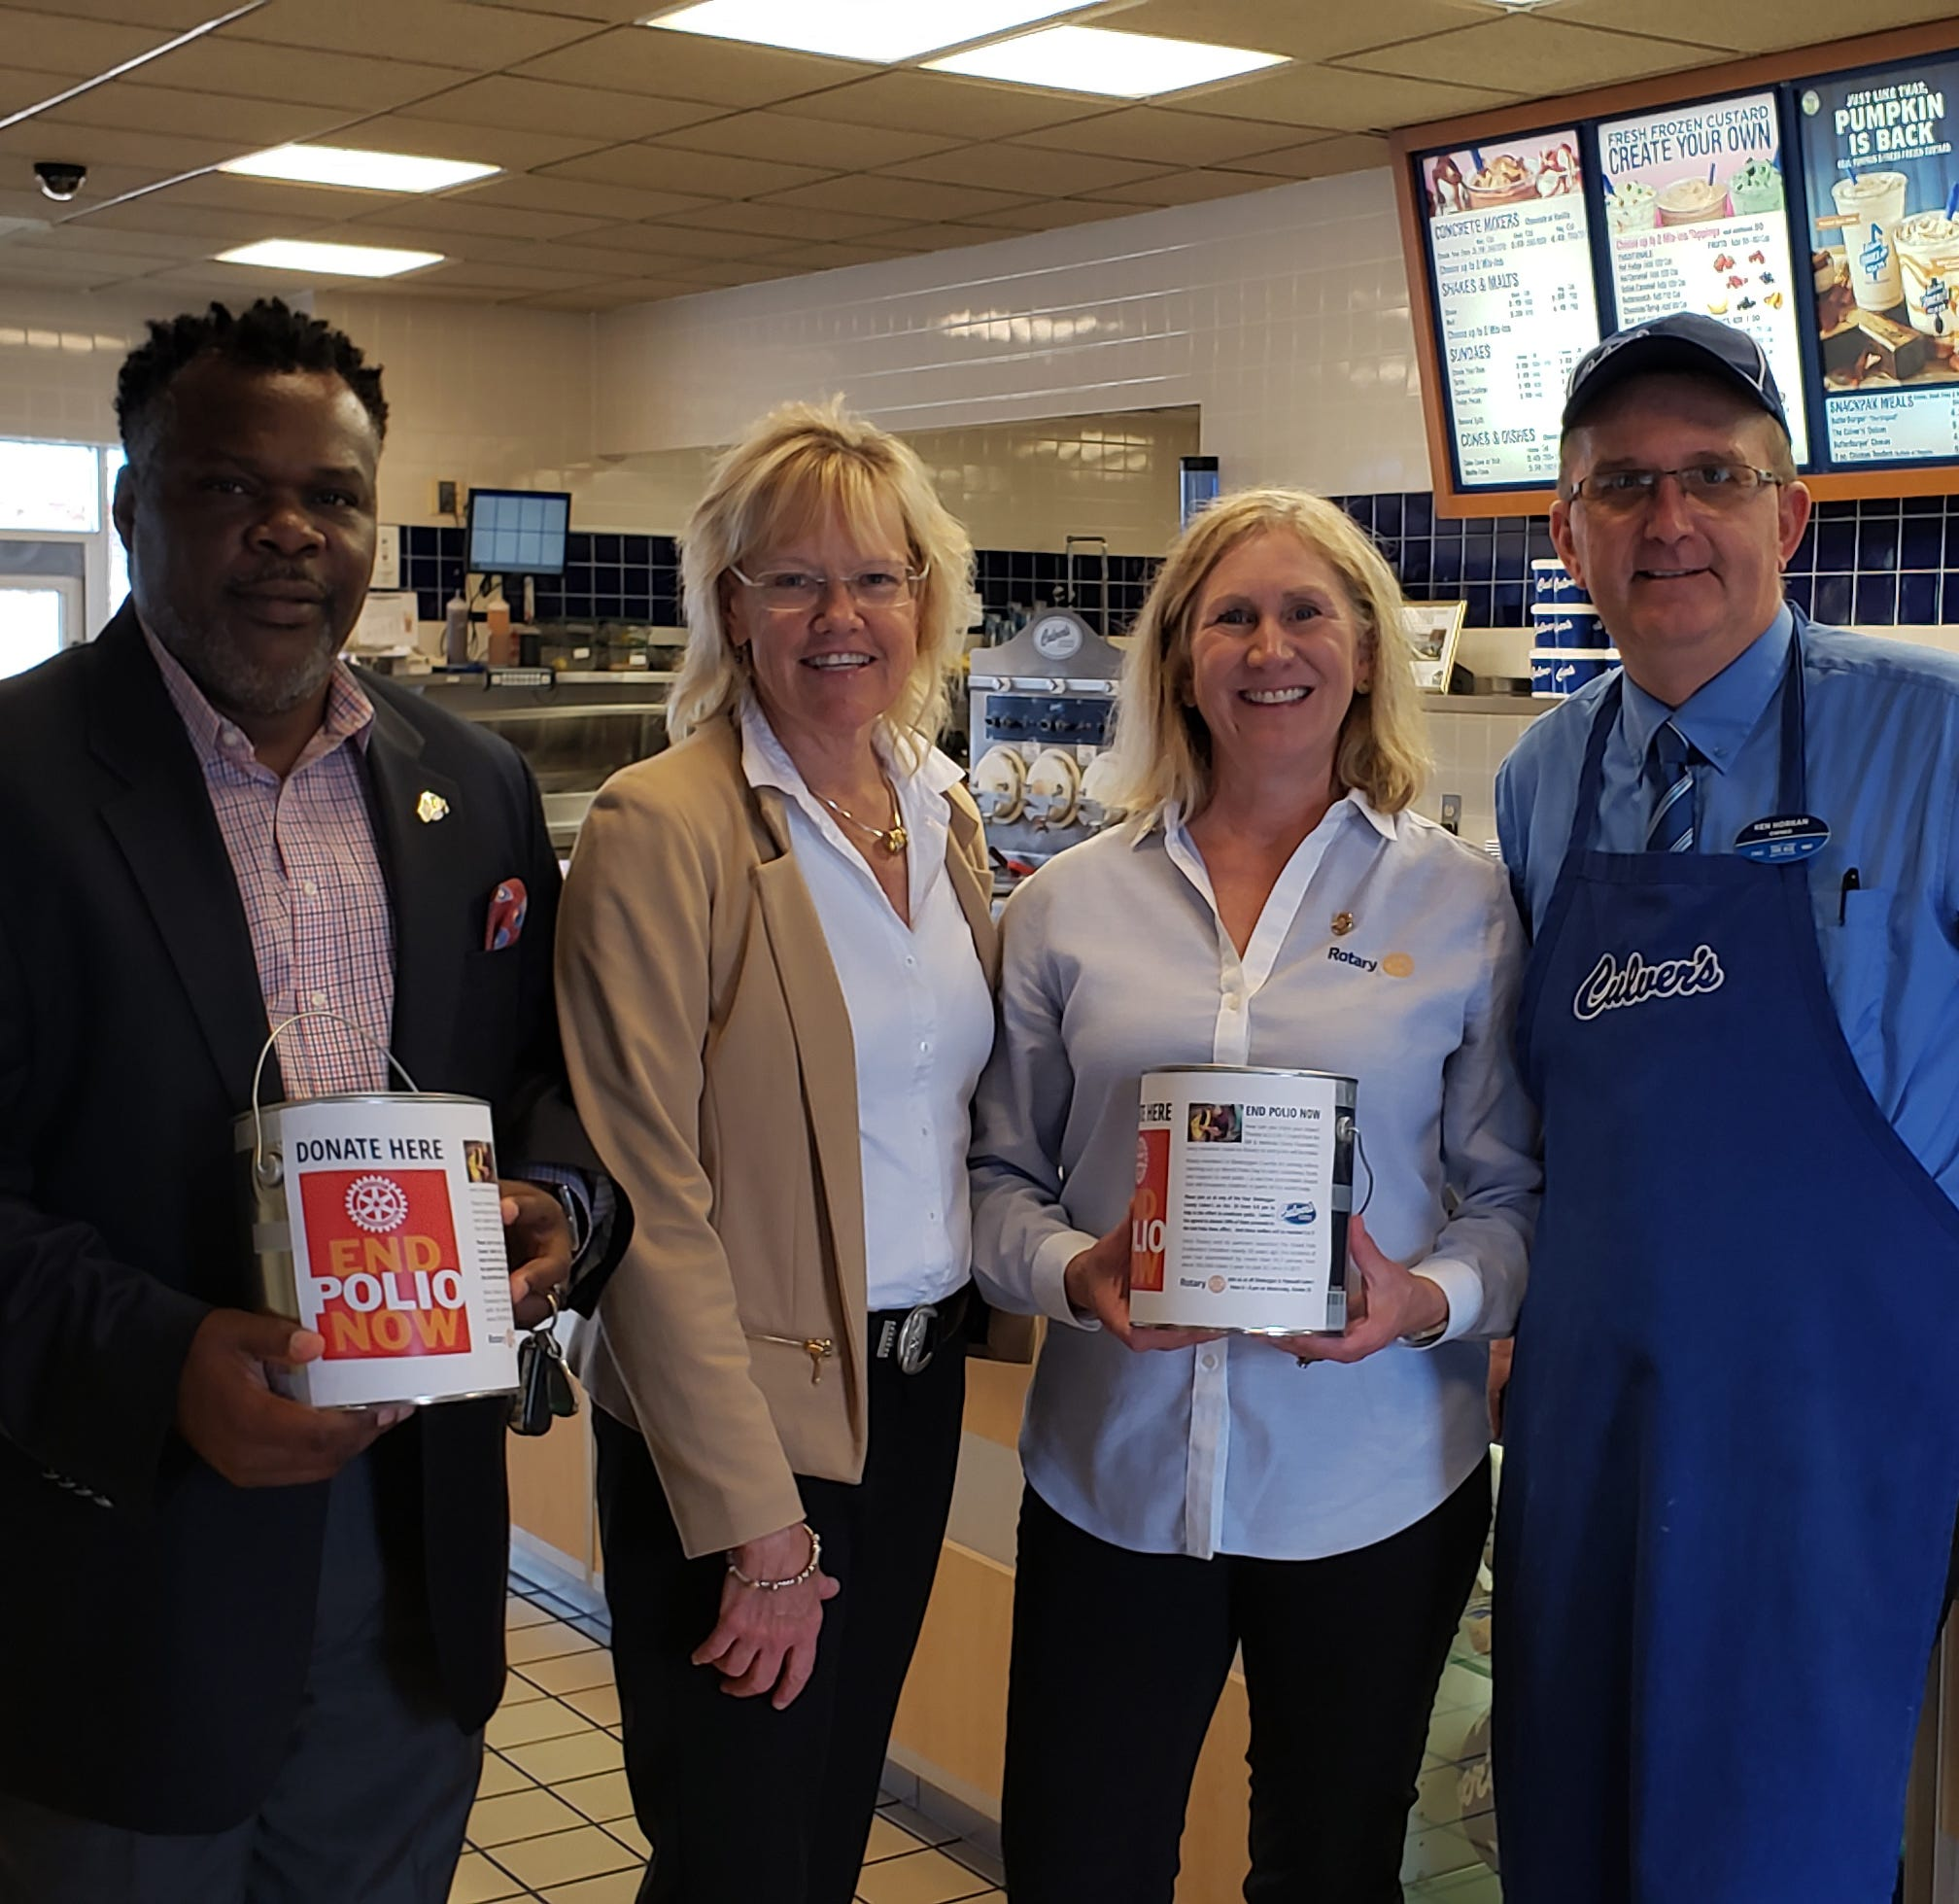 Sheboygan Culver's, Rotary fight to end polio with World Polio Day fundraiser